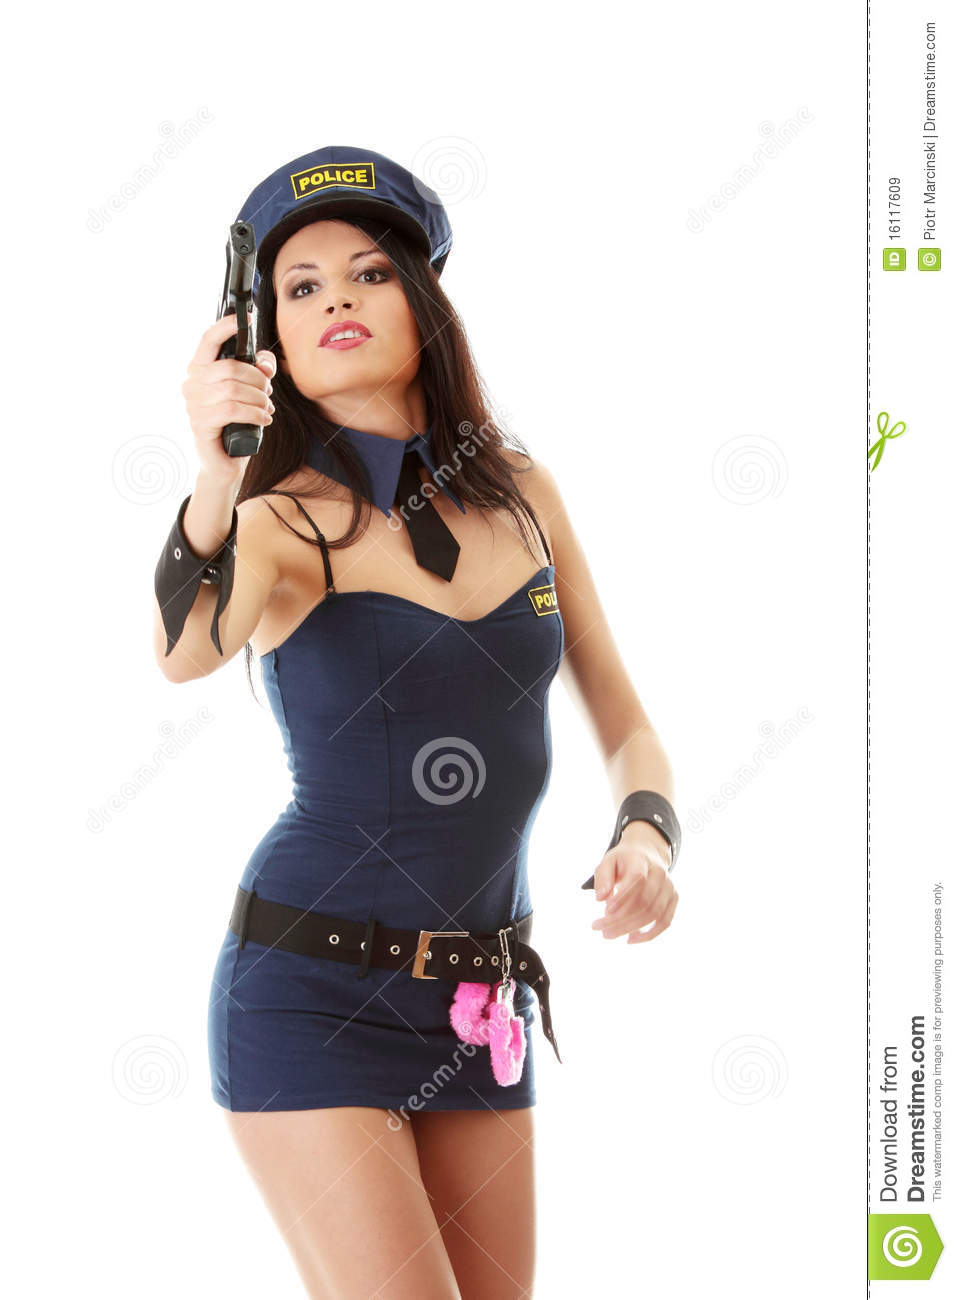 Police Girl Stock Image Image Of Performance, Beauty - 16117609-3804